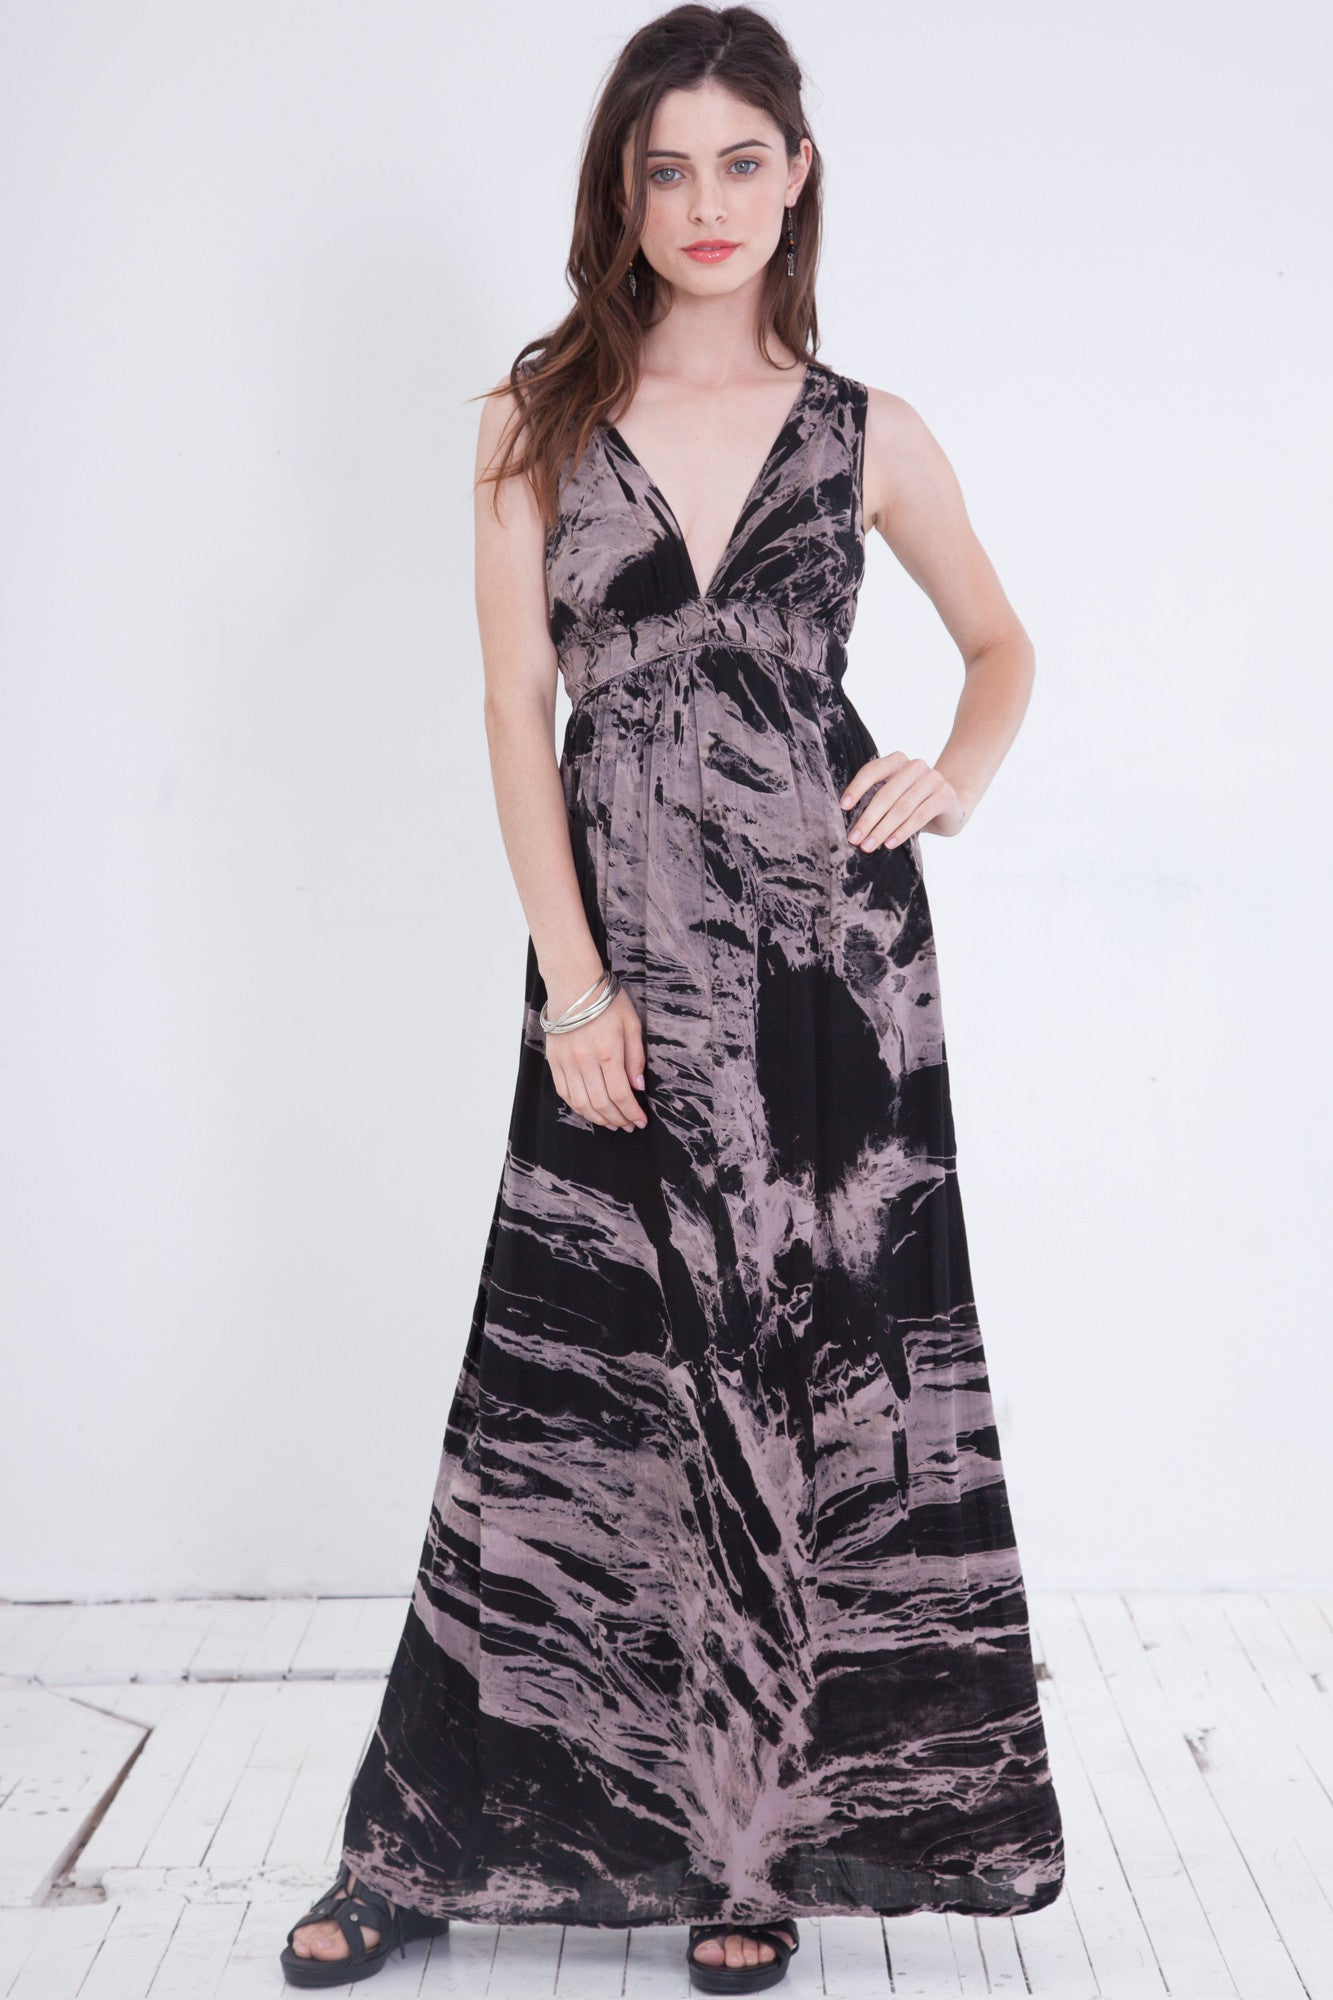 Black and White Tie Dye Maxi Dress